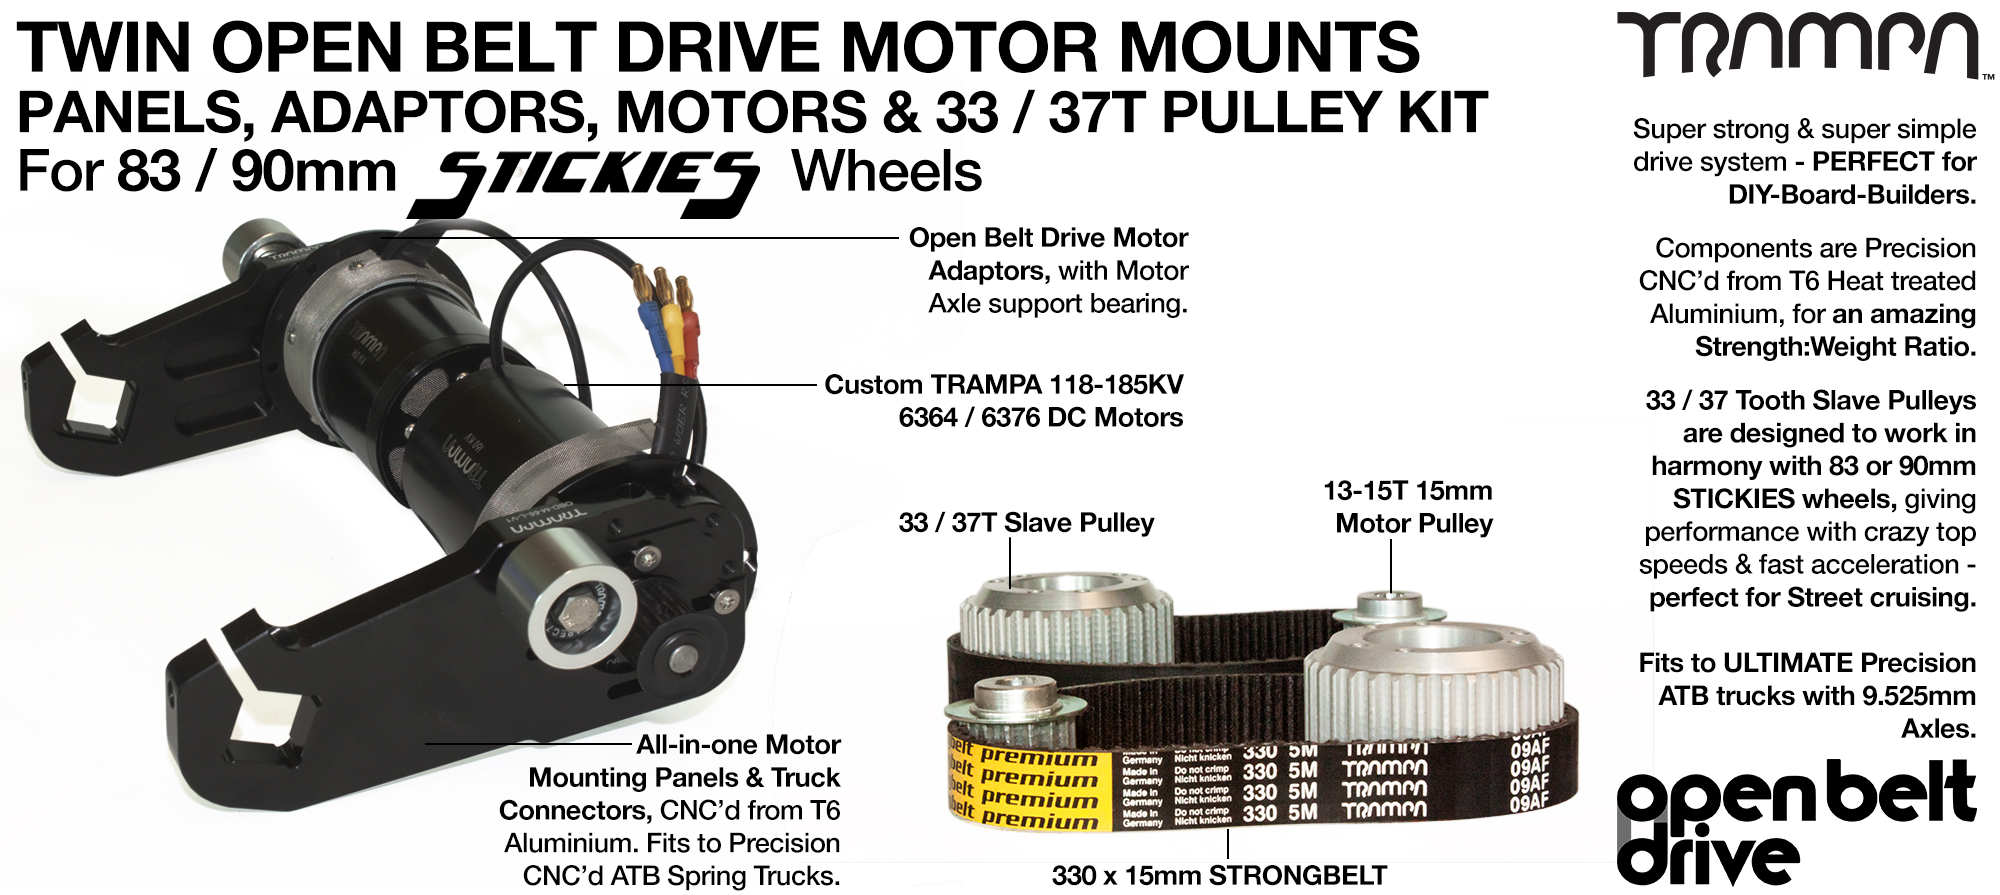 66T OBD Motor Mount with 33 / 37T Pulley kit & custom Motor - TWIN